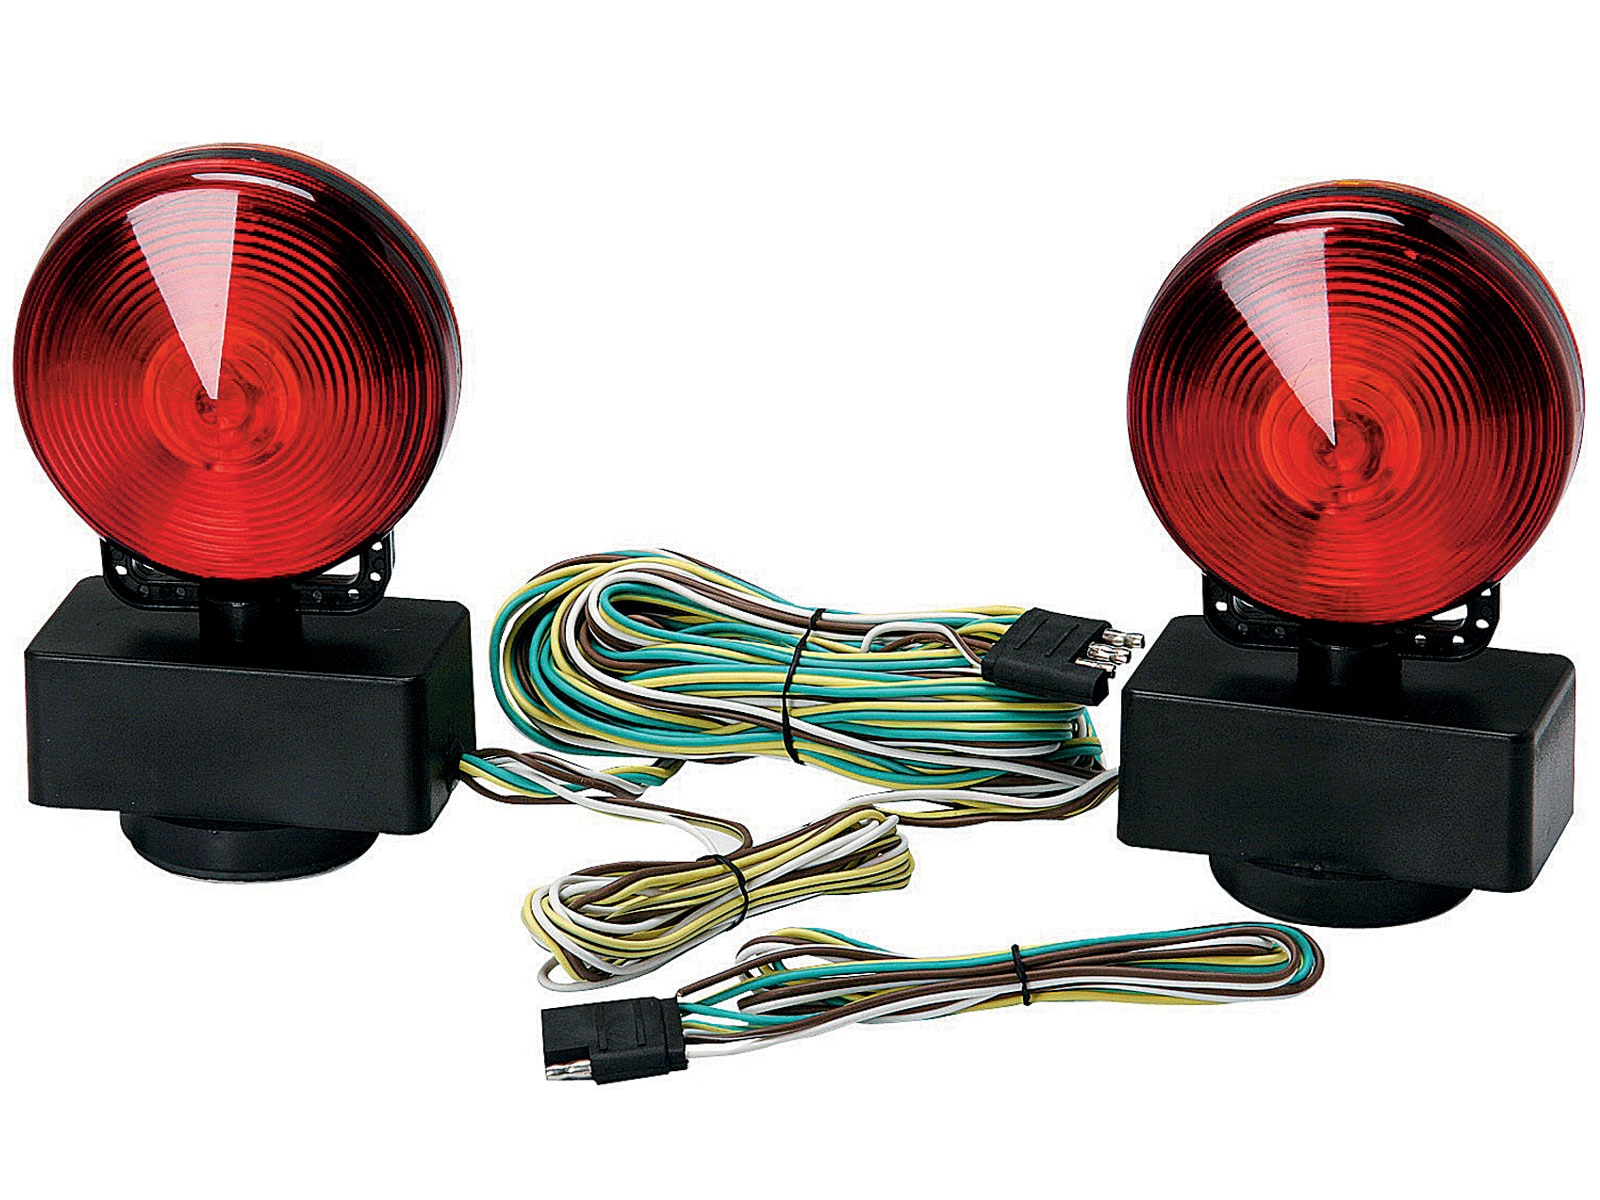 131 1003 15+2010 towing guide+magnetic towing lights